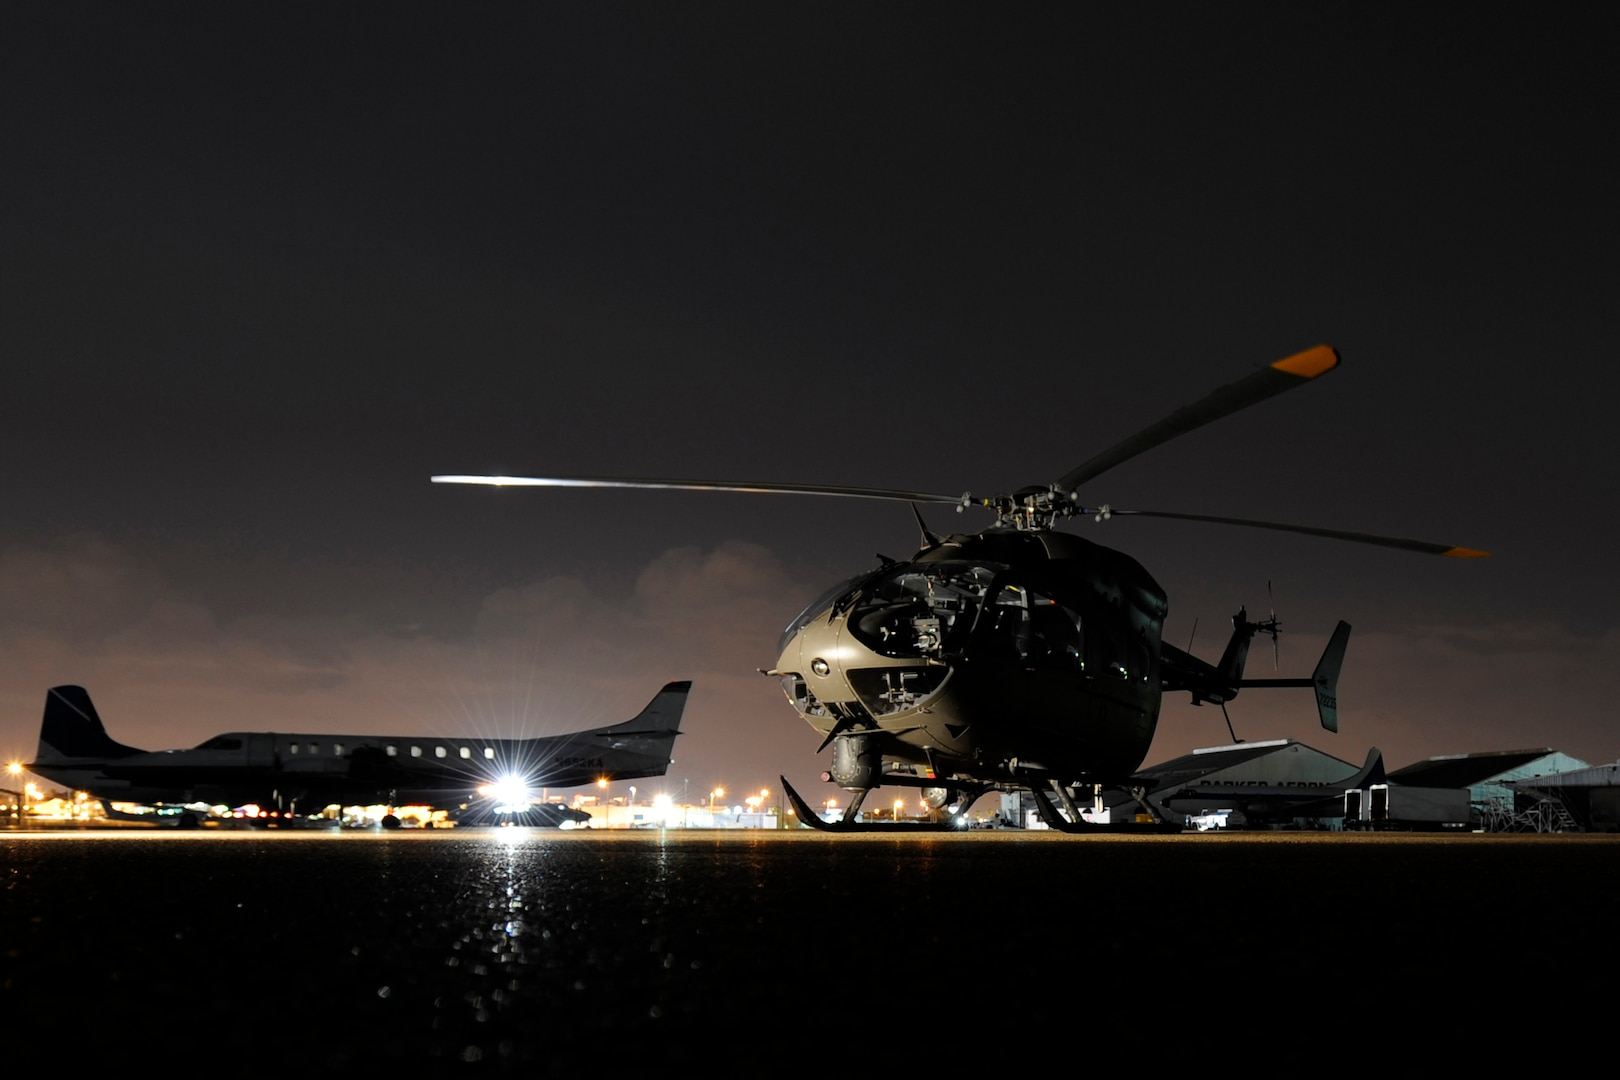 A National Guard UH-72 Lakota helicopter prepares to fly in support of Customs and Border Protection (CBP)-led Operation Phalanx. National Guardsmen from across the country assist CBP in disrupting transnational criminal organizations and drug trafficking organizations by conducting aerial detection and monitoring along the U.S.-Mexico border in support of Operation Phalanx and the U.S. Department of Homeland Security.